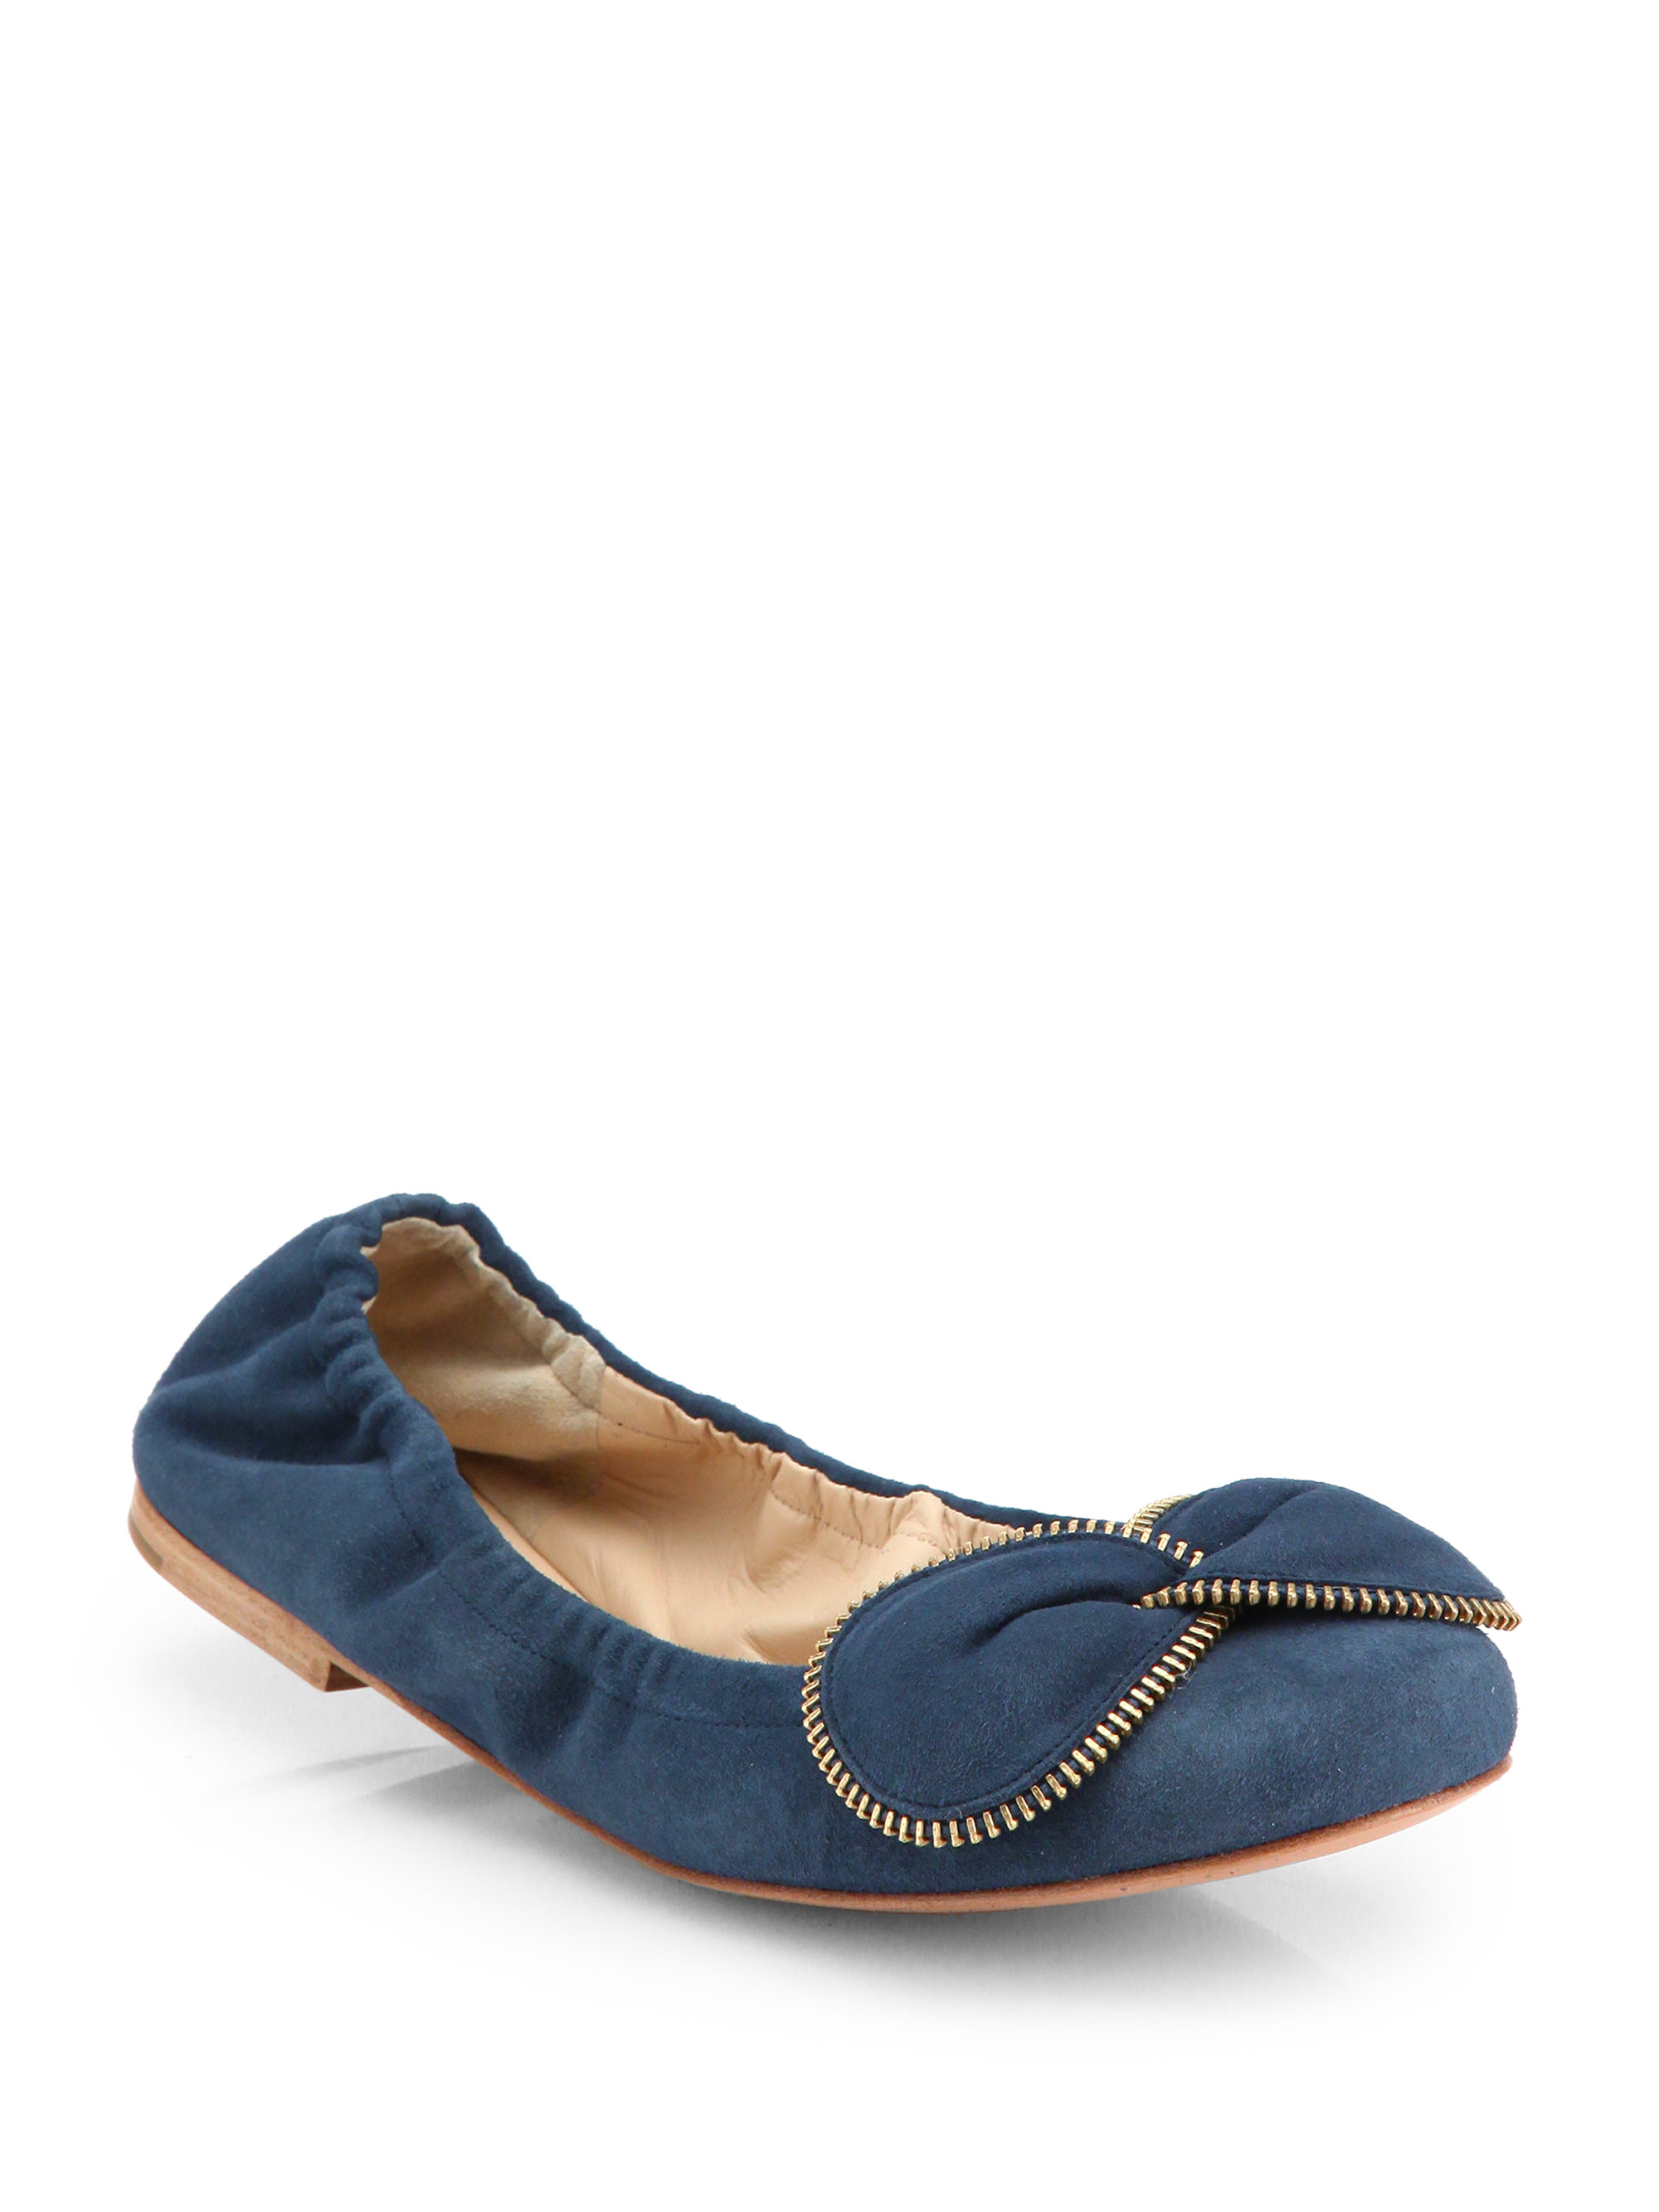 see by chlo suede bowtie ballet flats in blue lyst. Black Bedroom Furniture Sets. Home Design Ideas